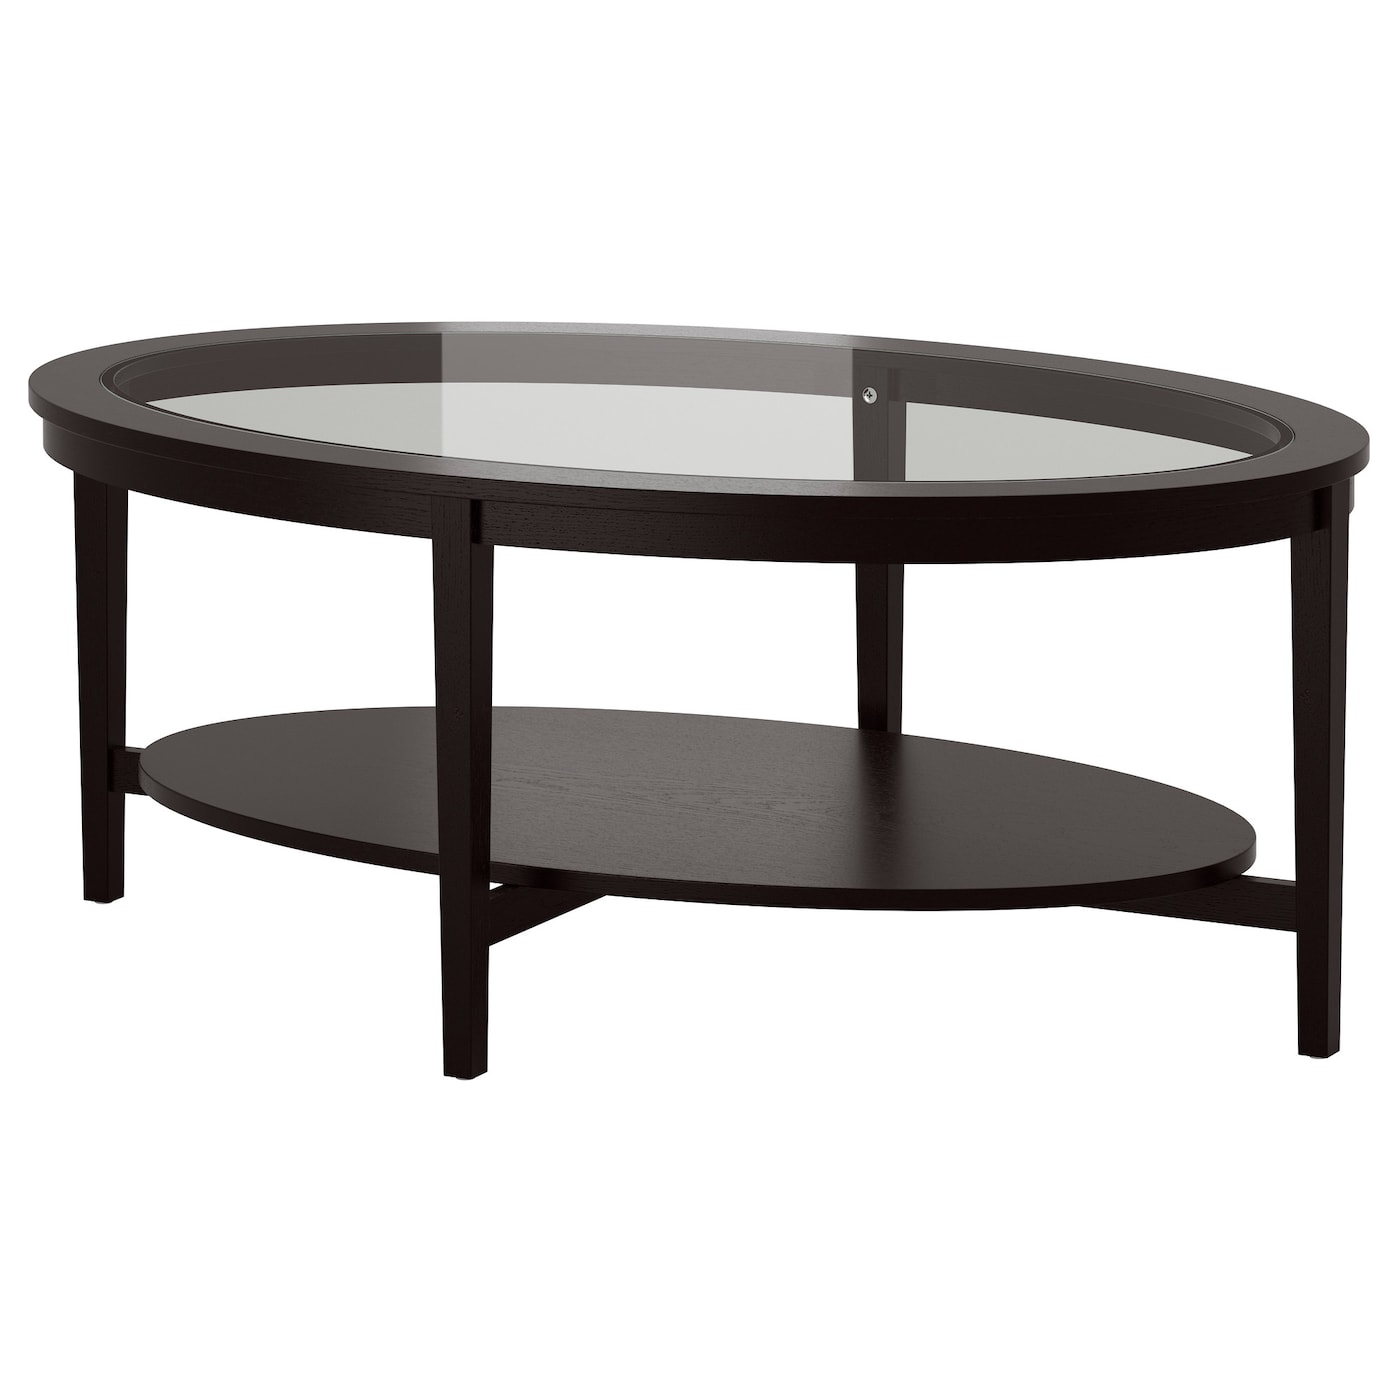 Malmsta Coffee Table Black Brown 130x80 Cm Ikea: black and white coffee table